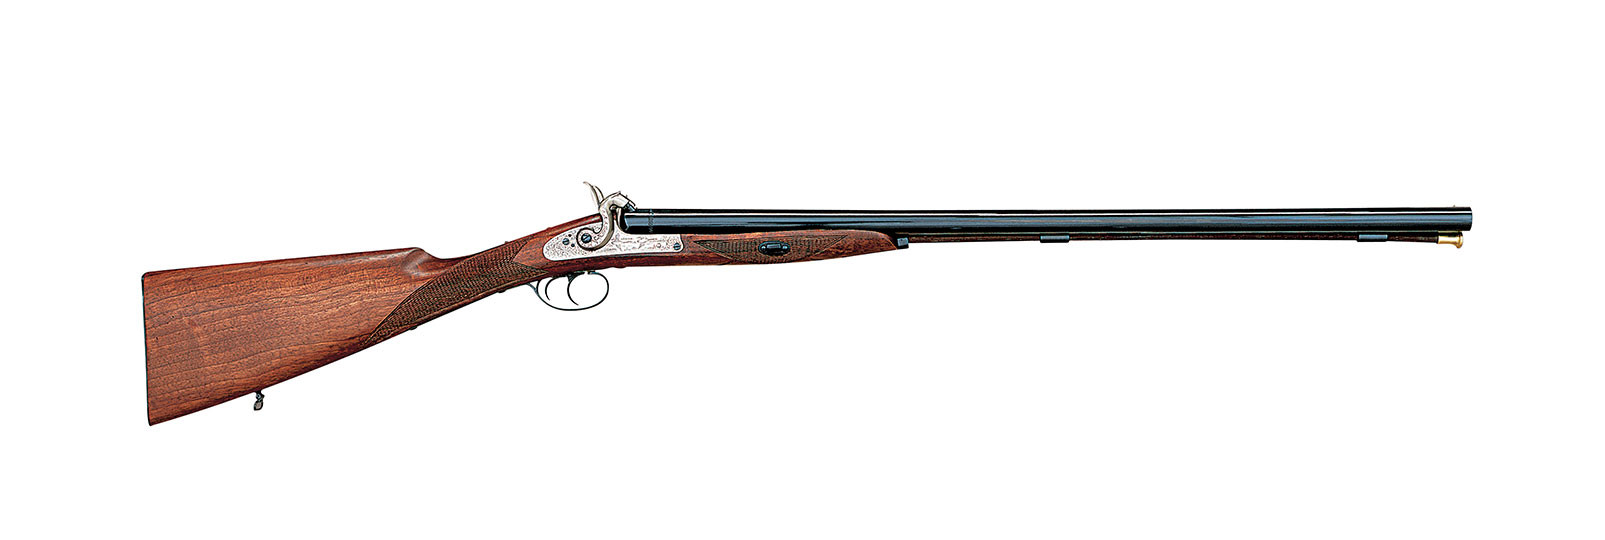 Muzzle loading side by side shotguns